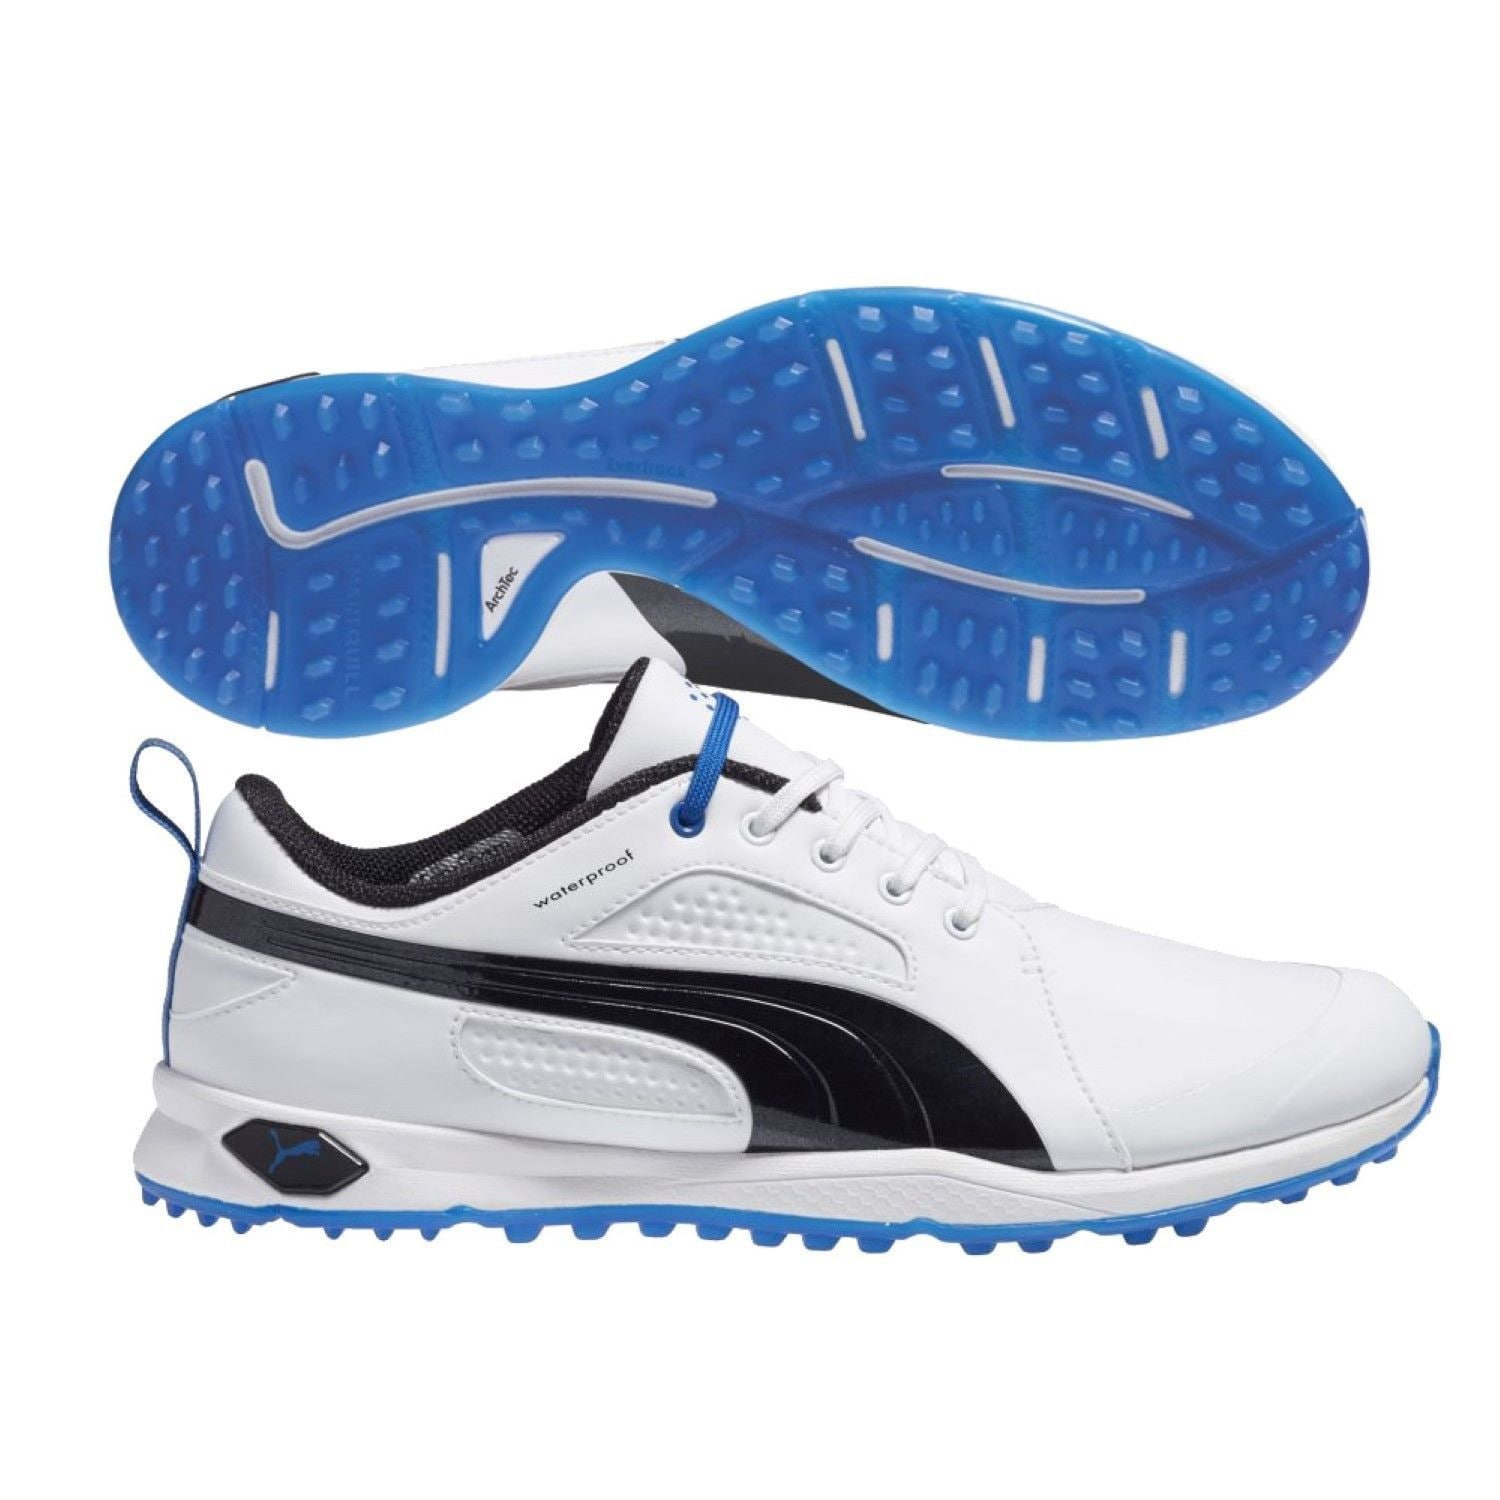 73b73c9a0bb33c Shop Puma Men s Biofly White  Black  Strong Blue Golf Shoes - Free Shipping  Today - Overstock - 10606285